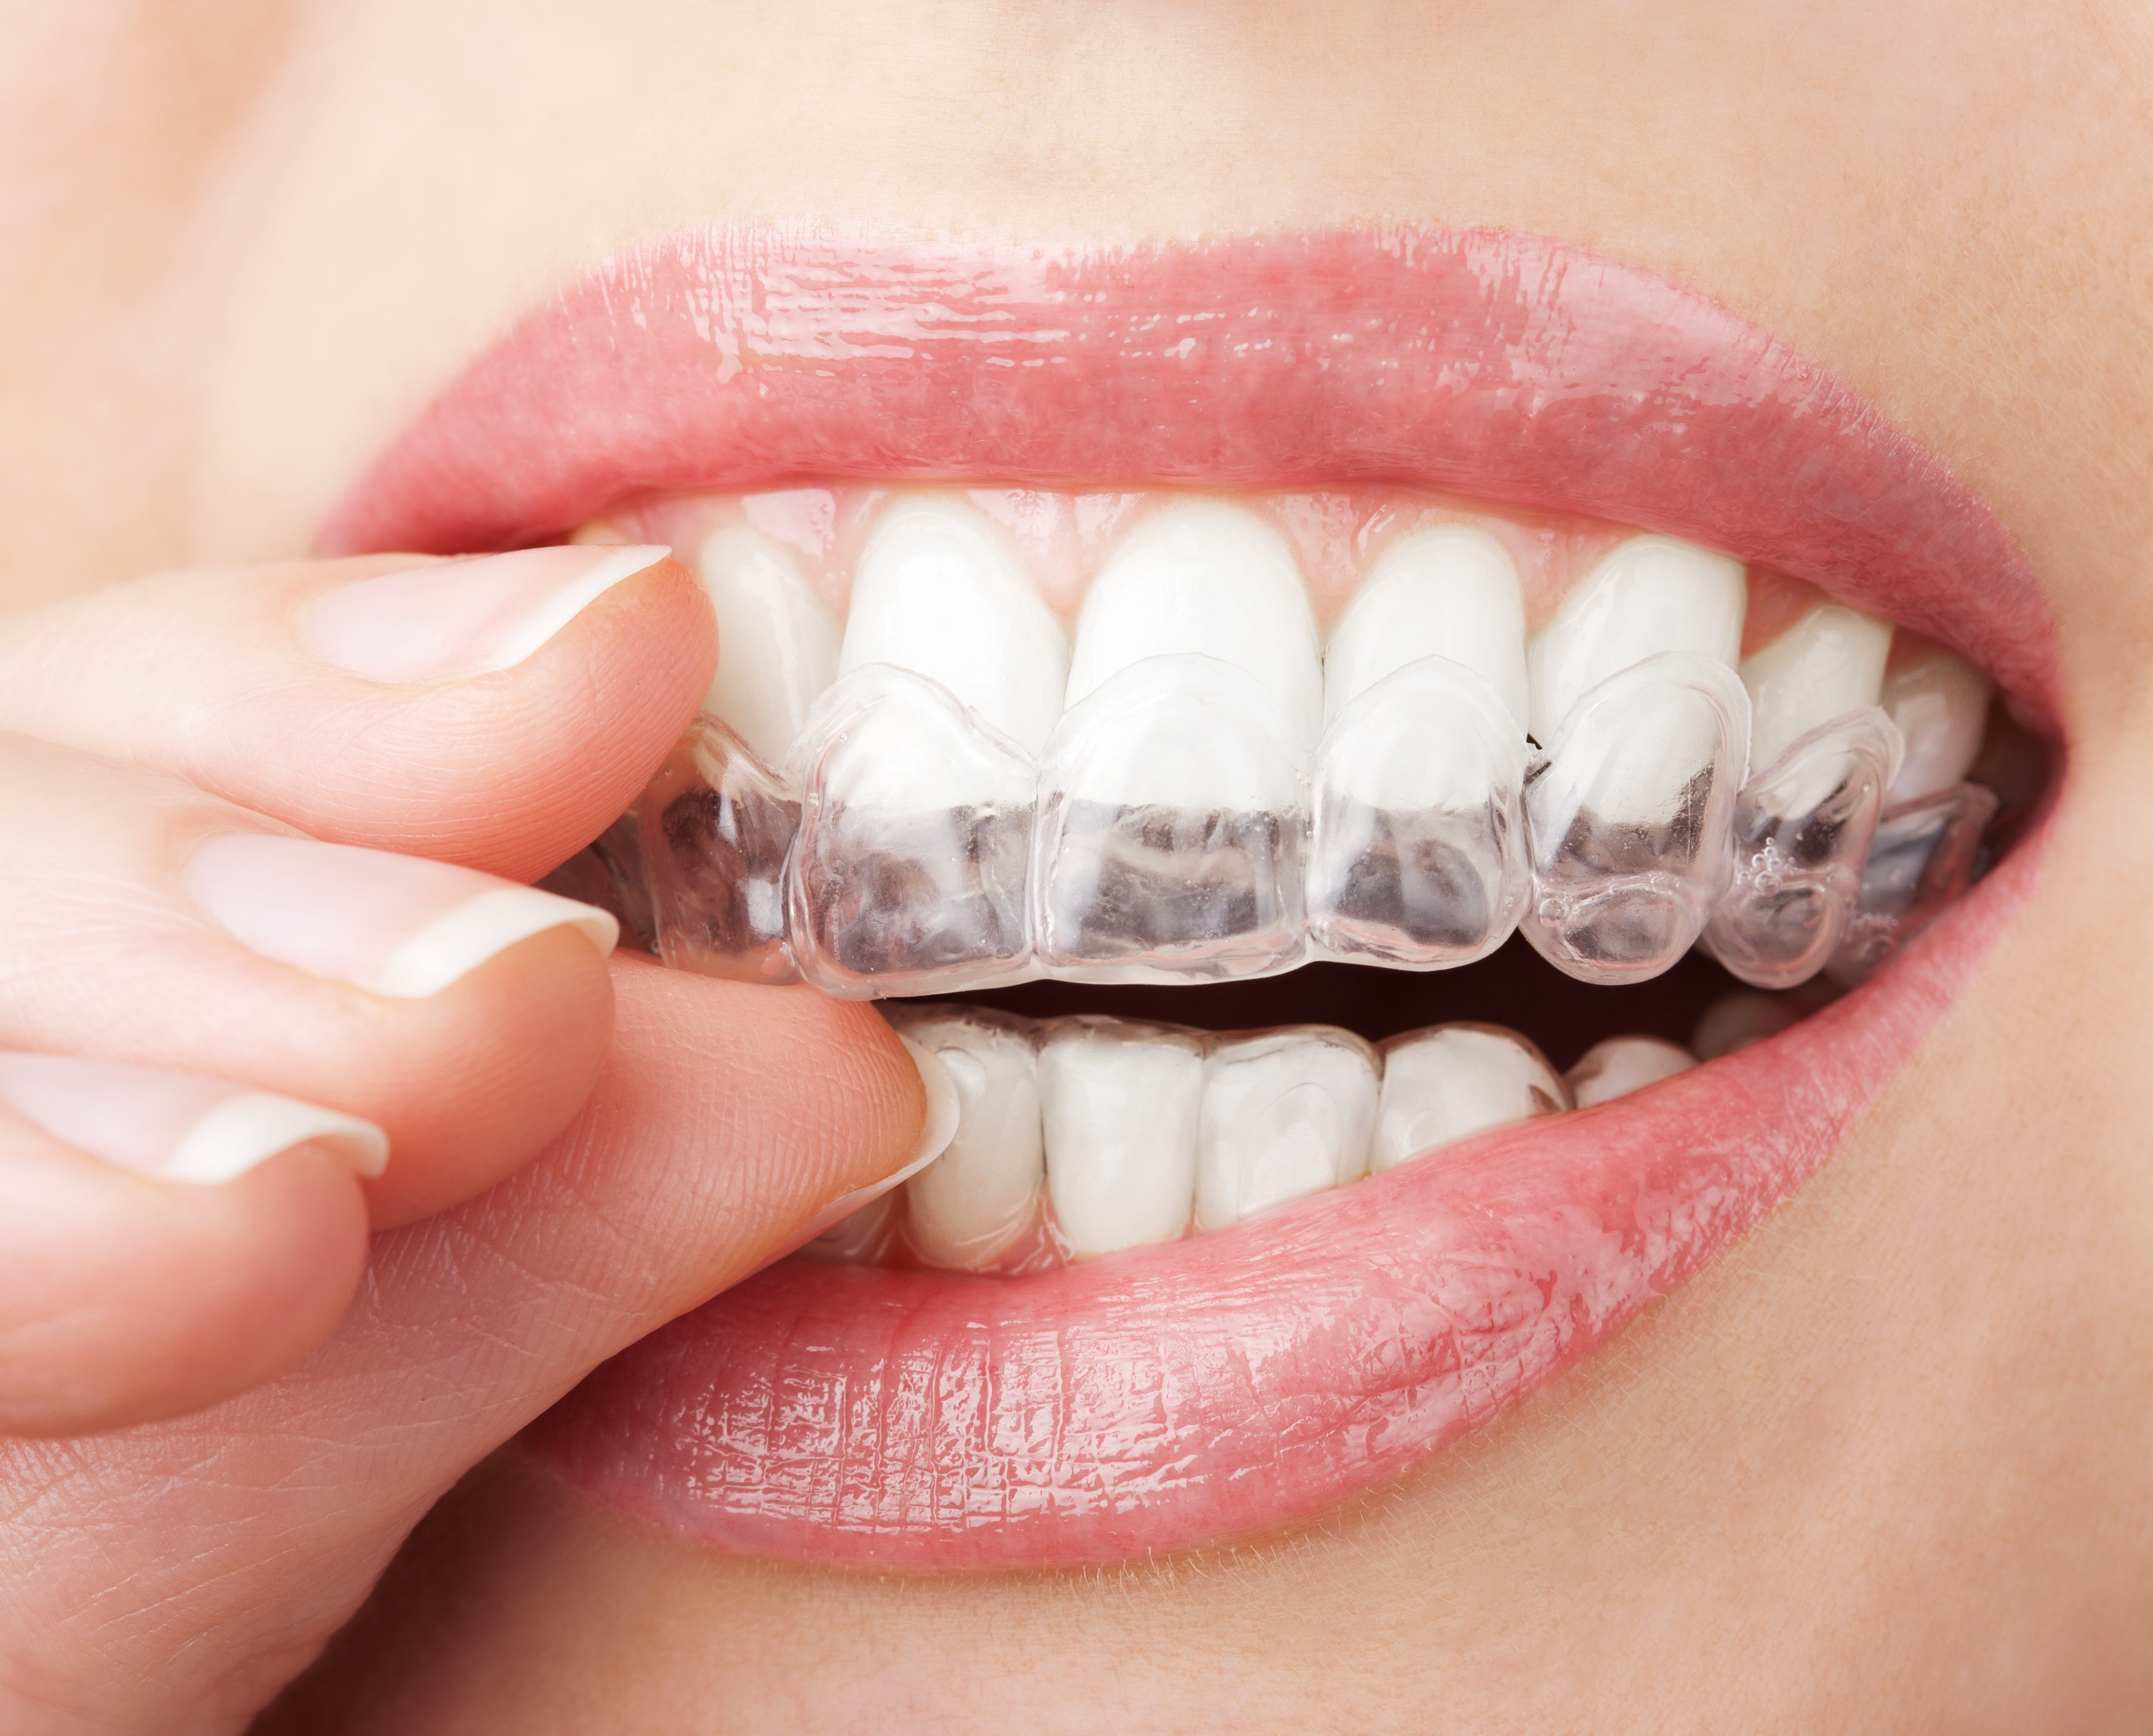 Where can I get 92069 Invisalign?